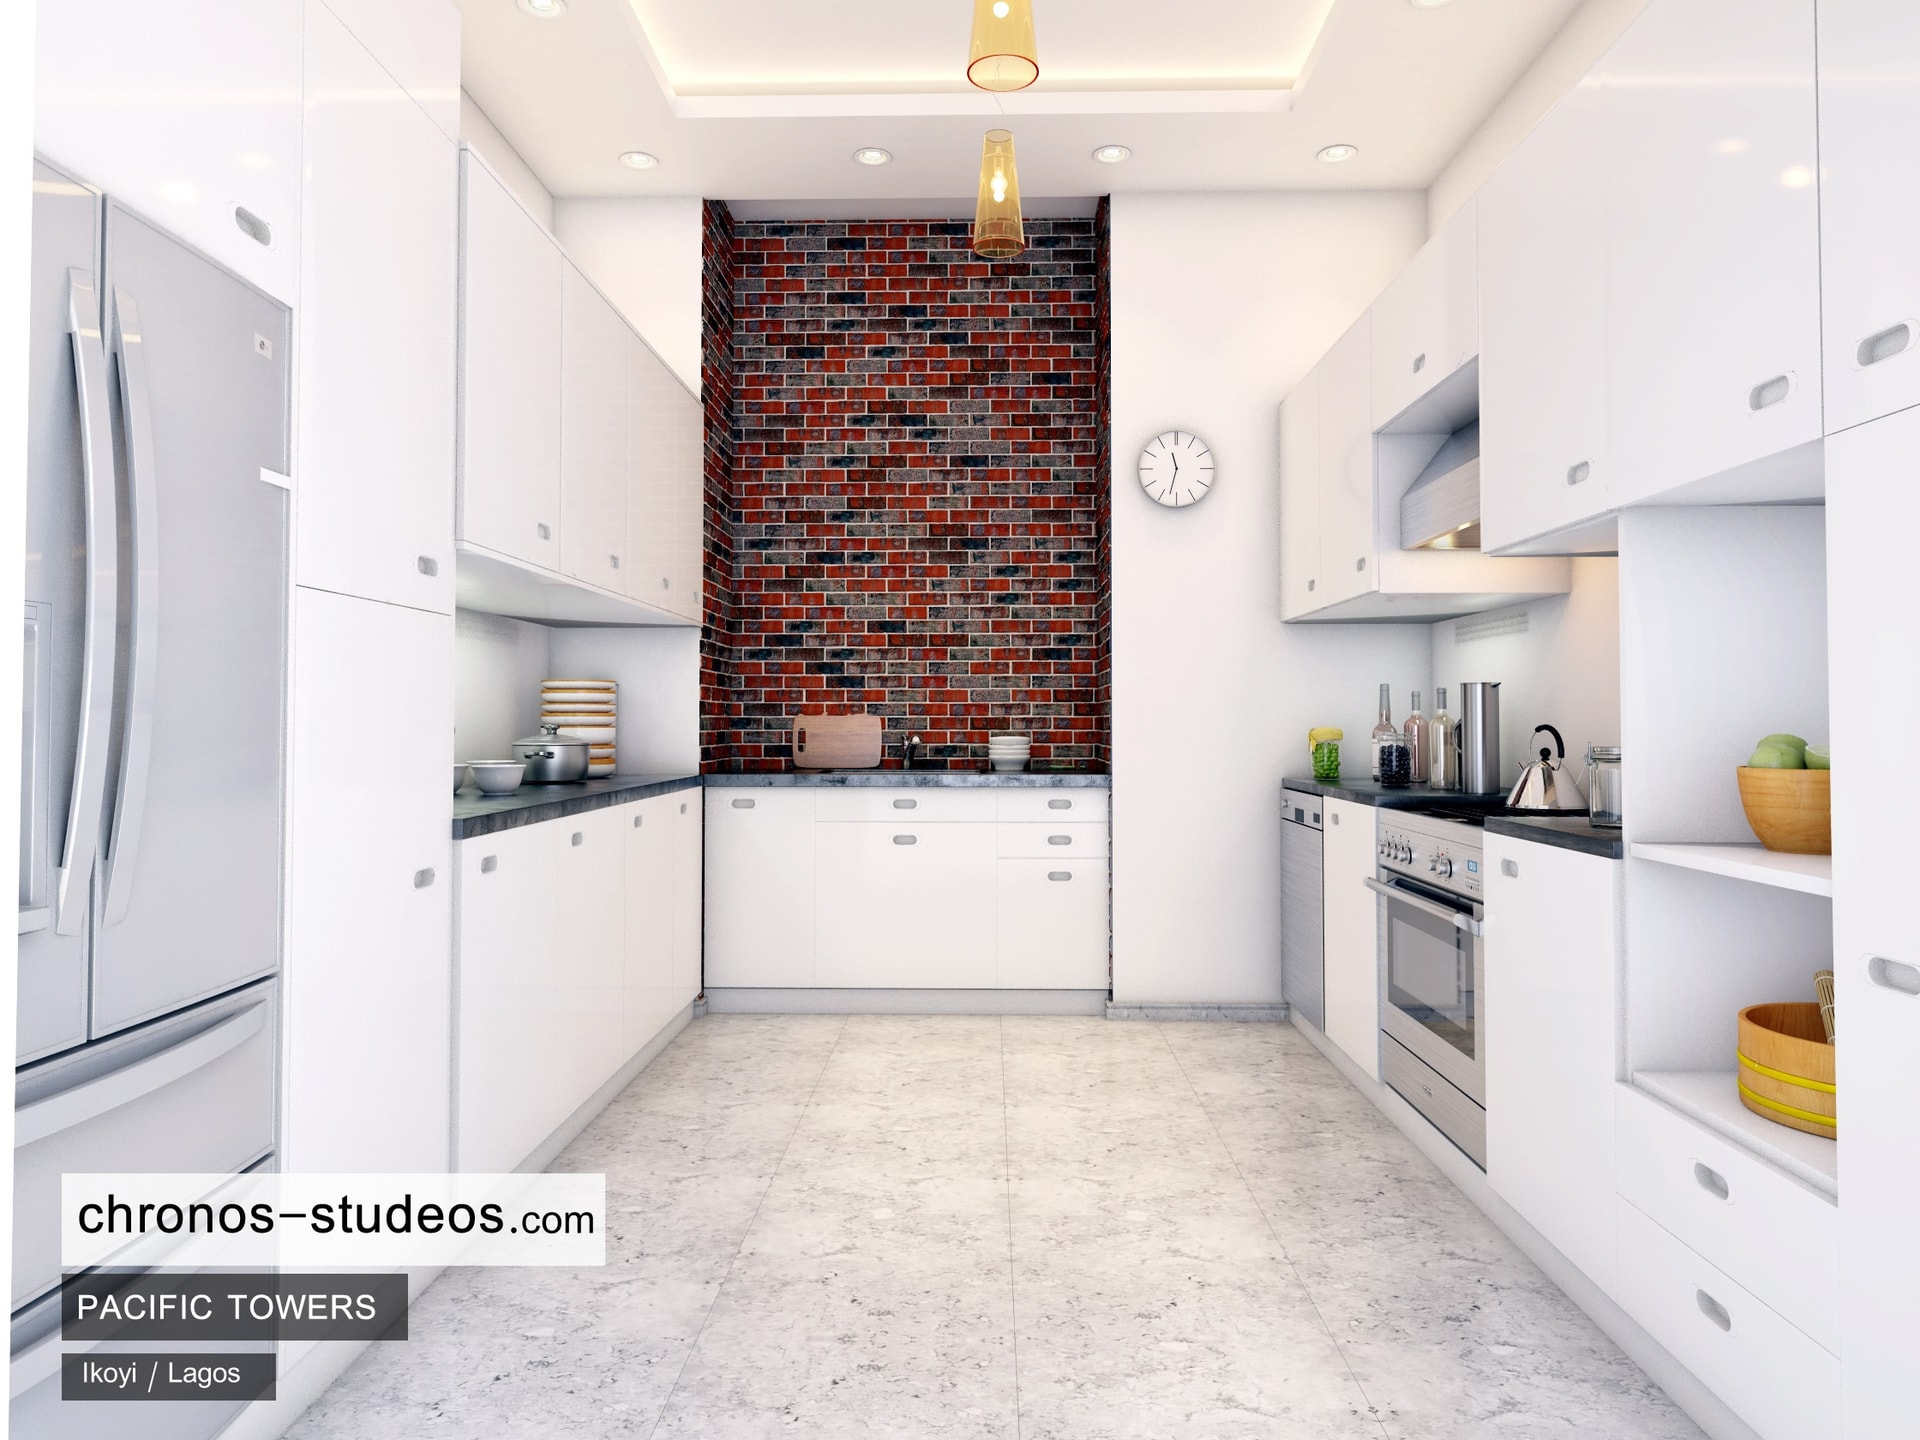 3 Things You Probably Didn't Know About Kitchen Interiors